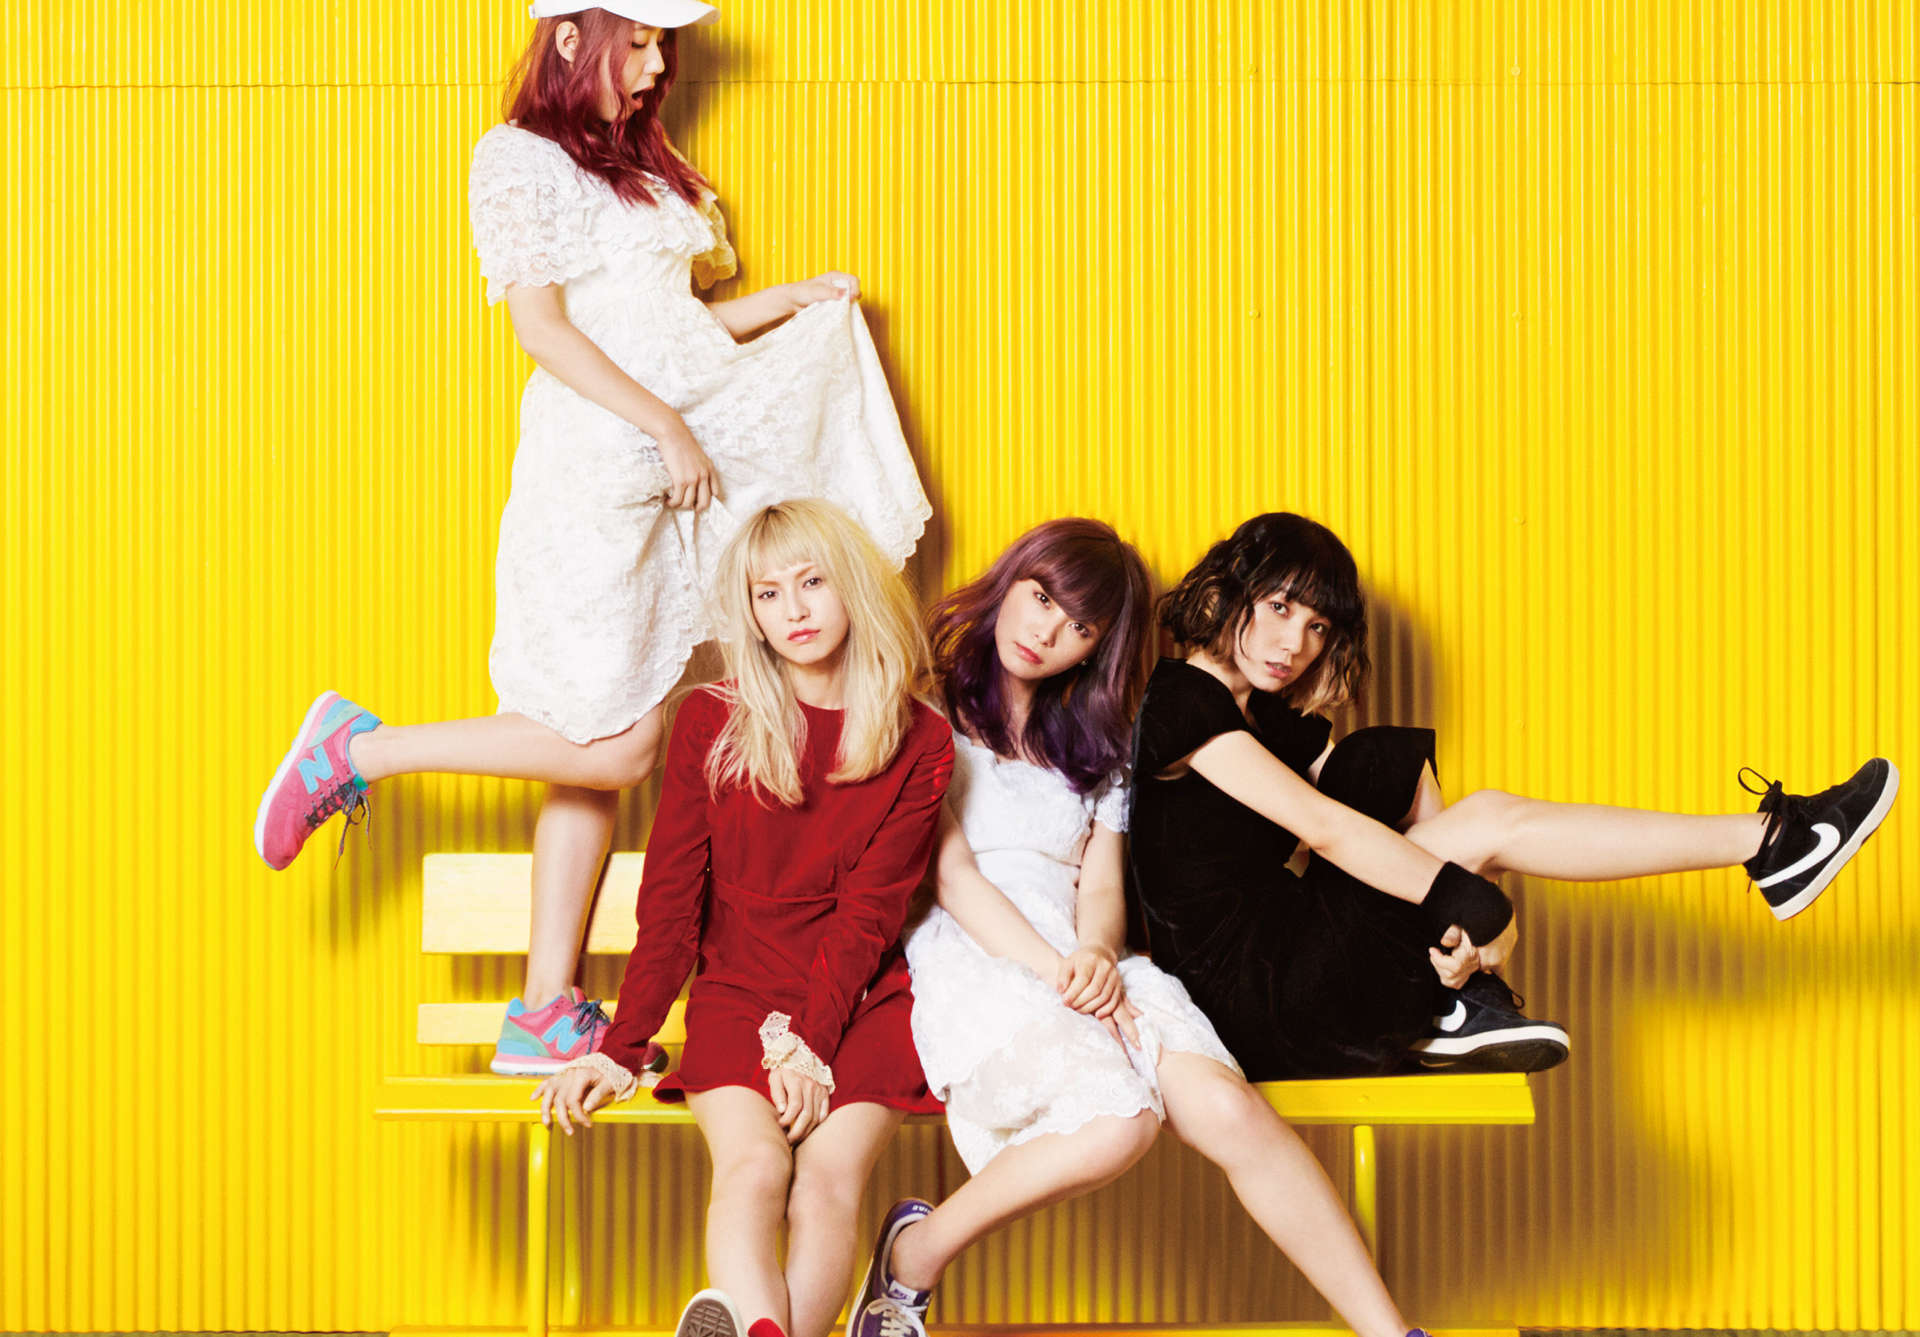 SCANDAL-YELLOW-background-2[1]